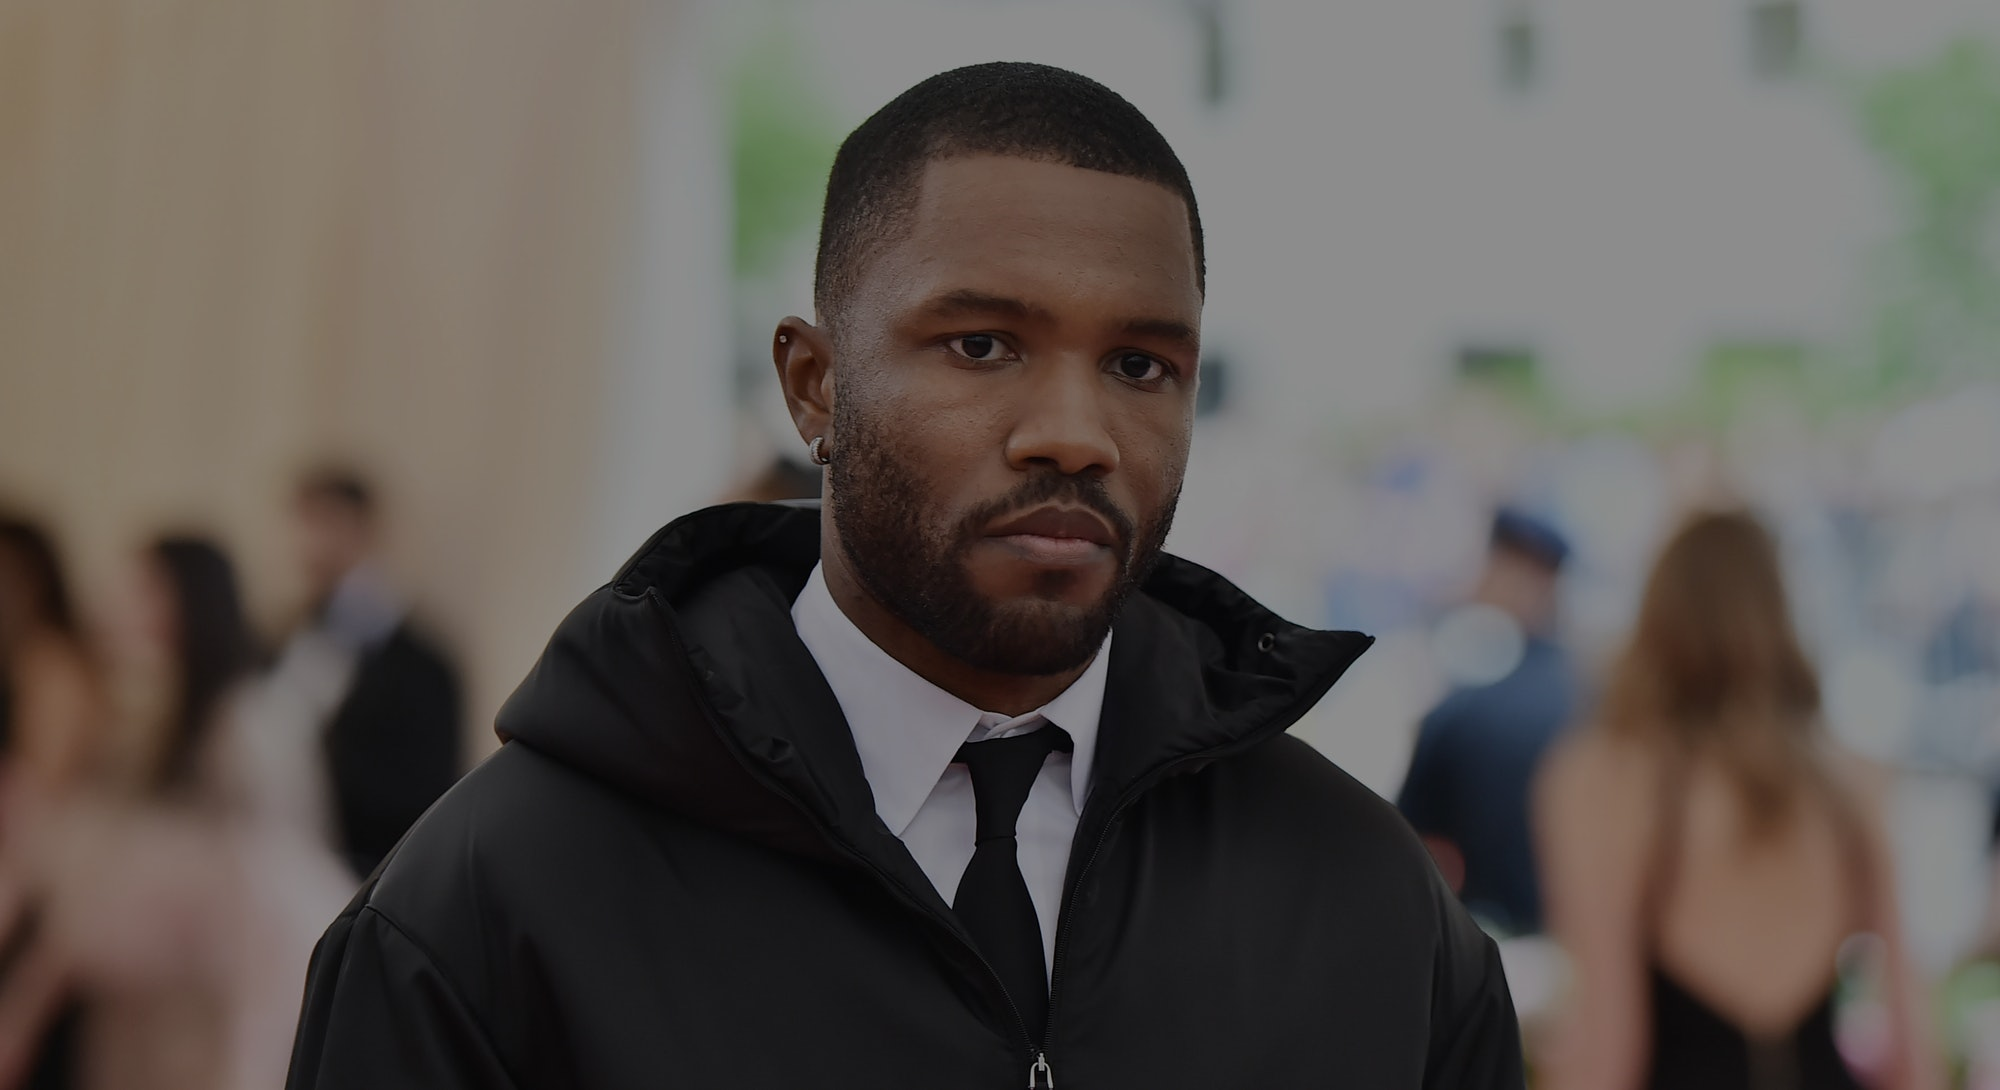 NEW YORK, NEW YORK - MAY 06: Frank Ocean attends The 2019 Met Gala Celebrating Camp: Notes on Fashio...